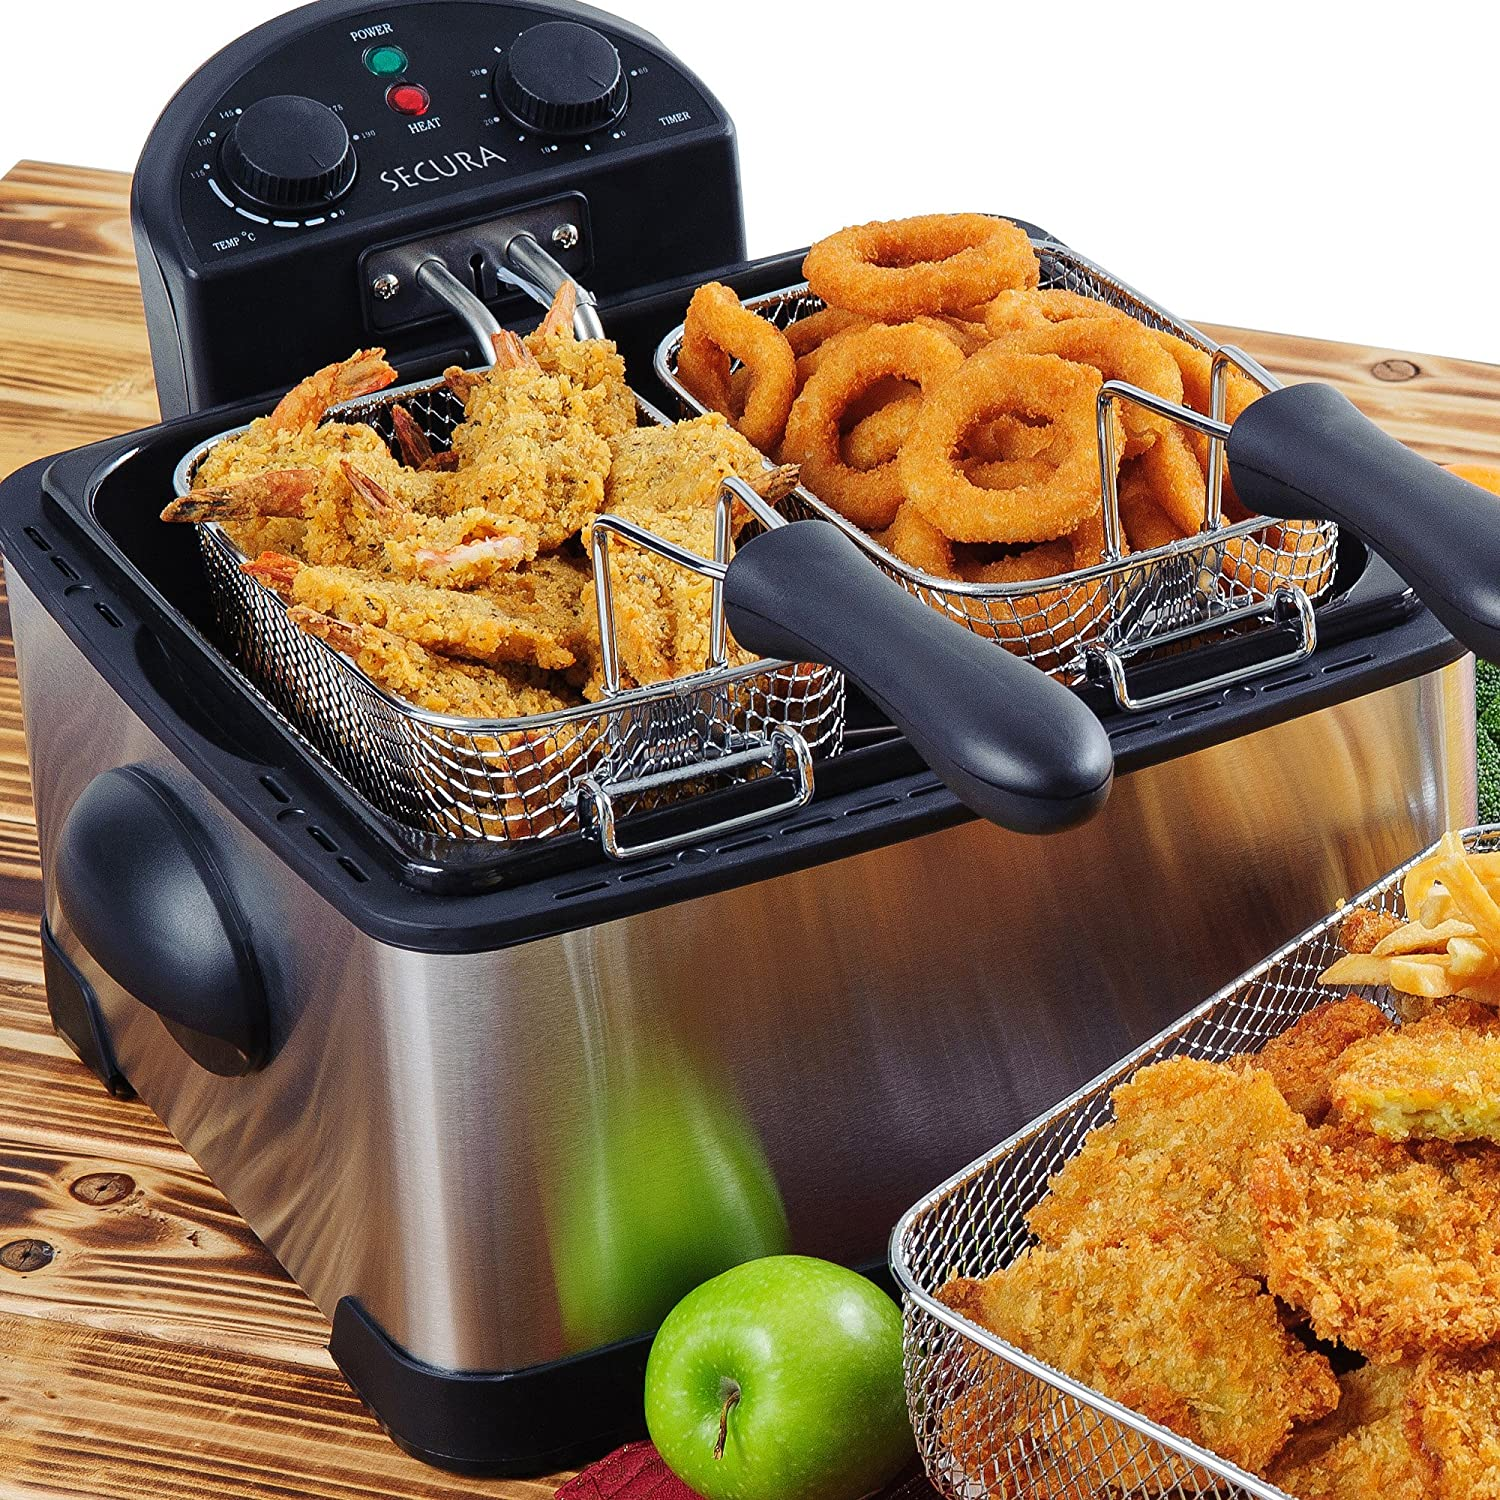 How to choose a deep fat fryer